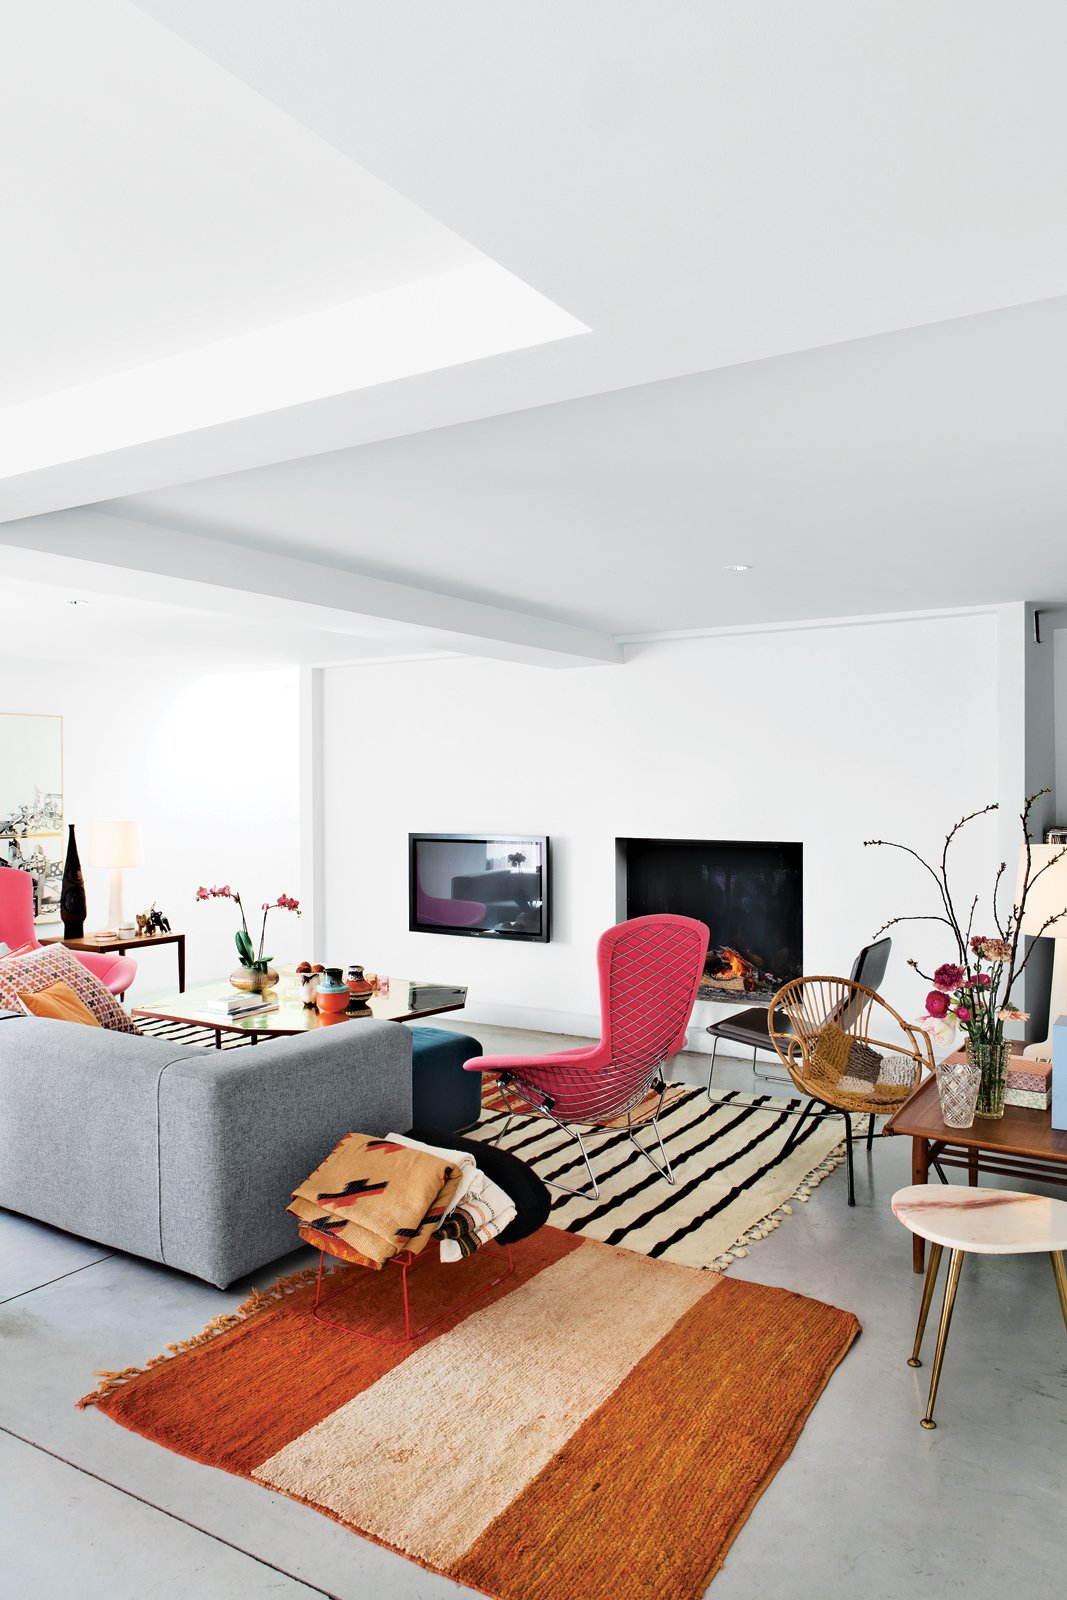 A pair of interior architects with a years-in-the-making furniture collection recast an old Belgian factory as a playful family home. Photo by Frederik Vercruysse.